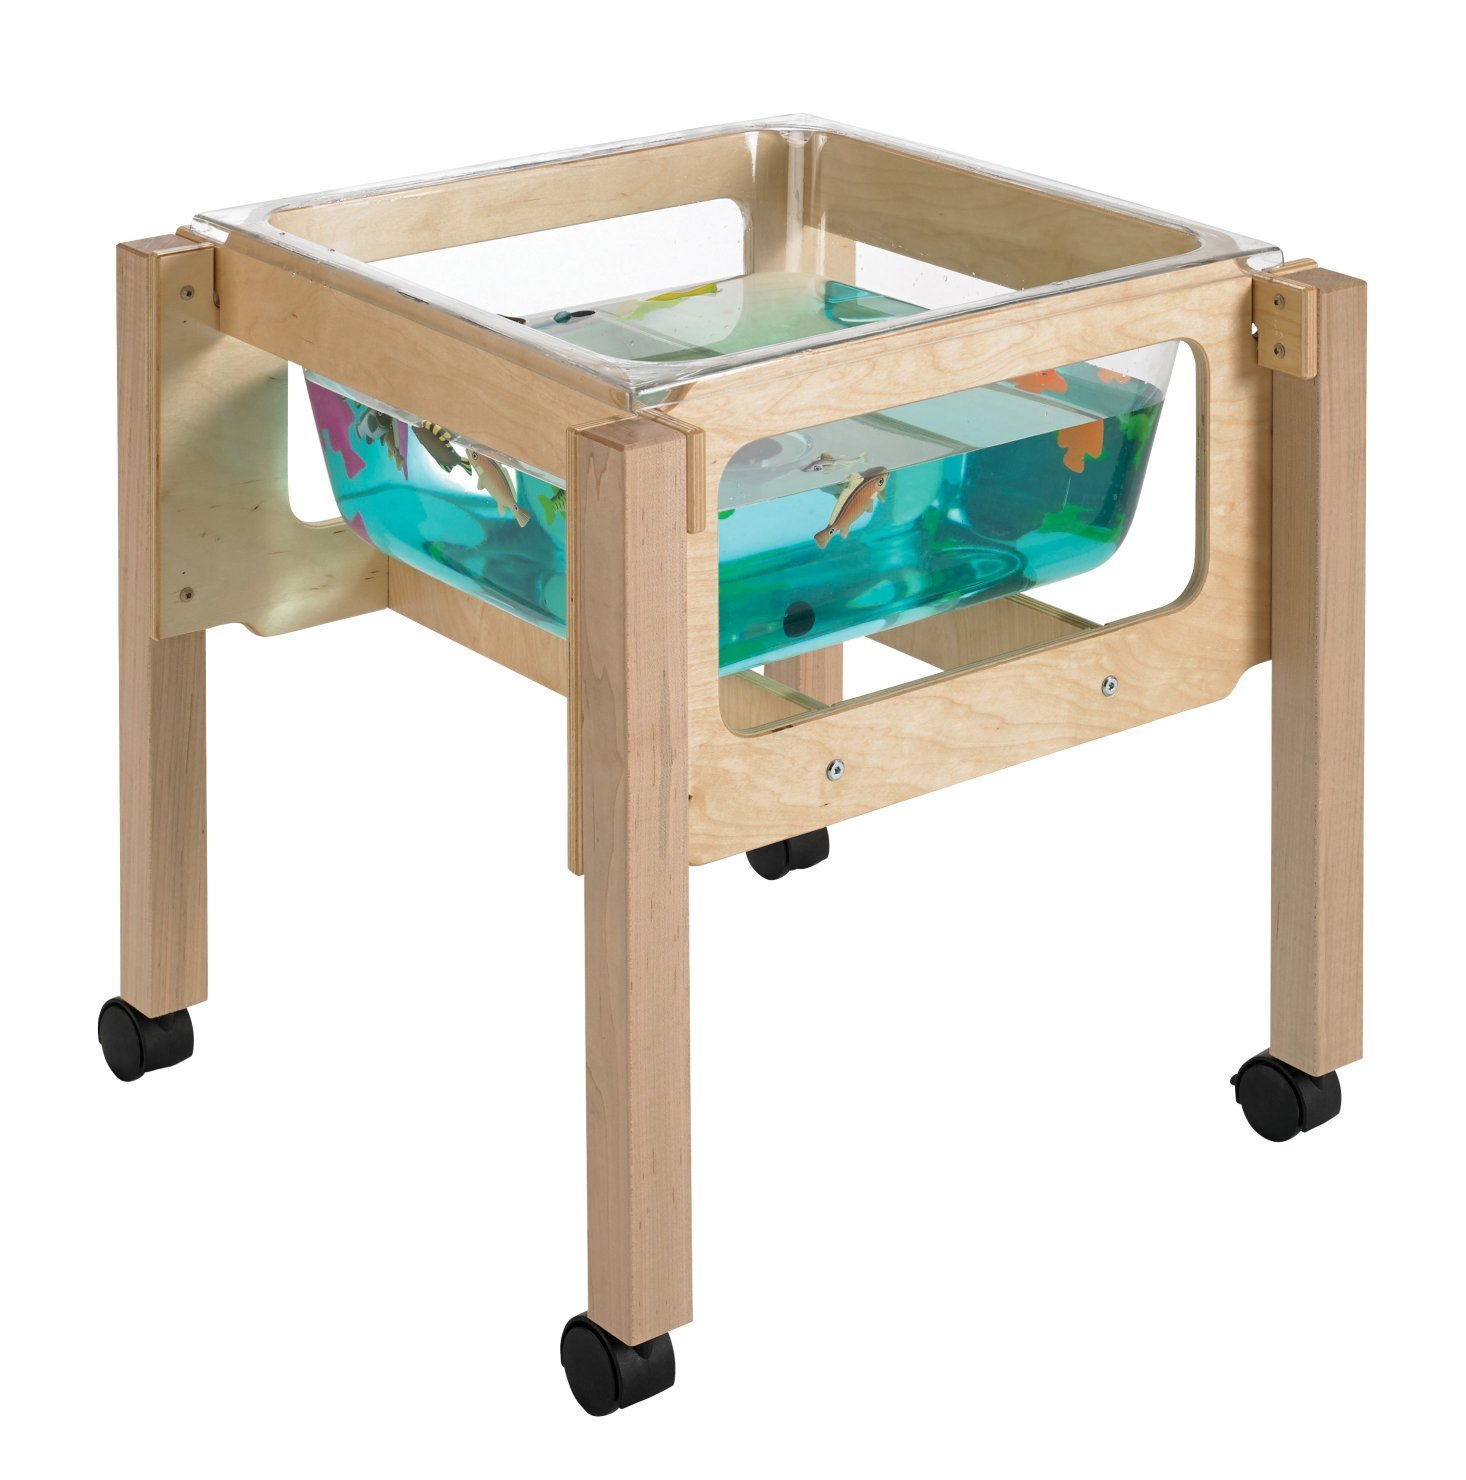 Top 11 Best Water Tables for Kids and Toddlers Reviews in 2021 22